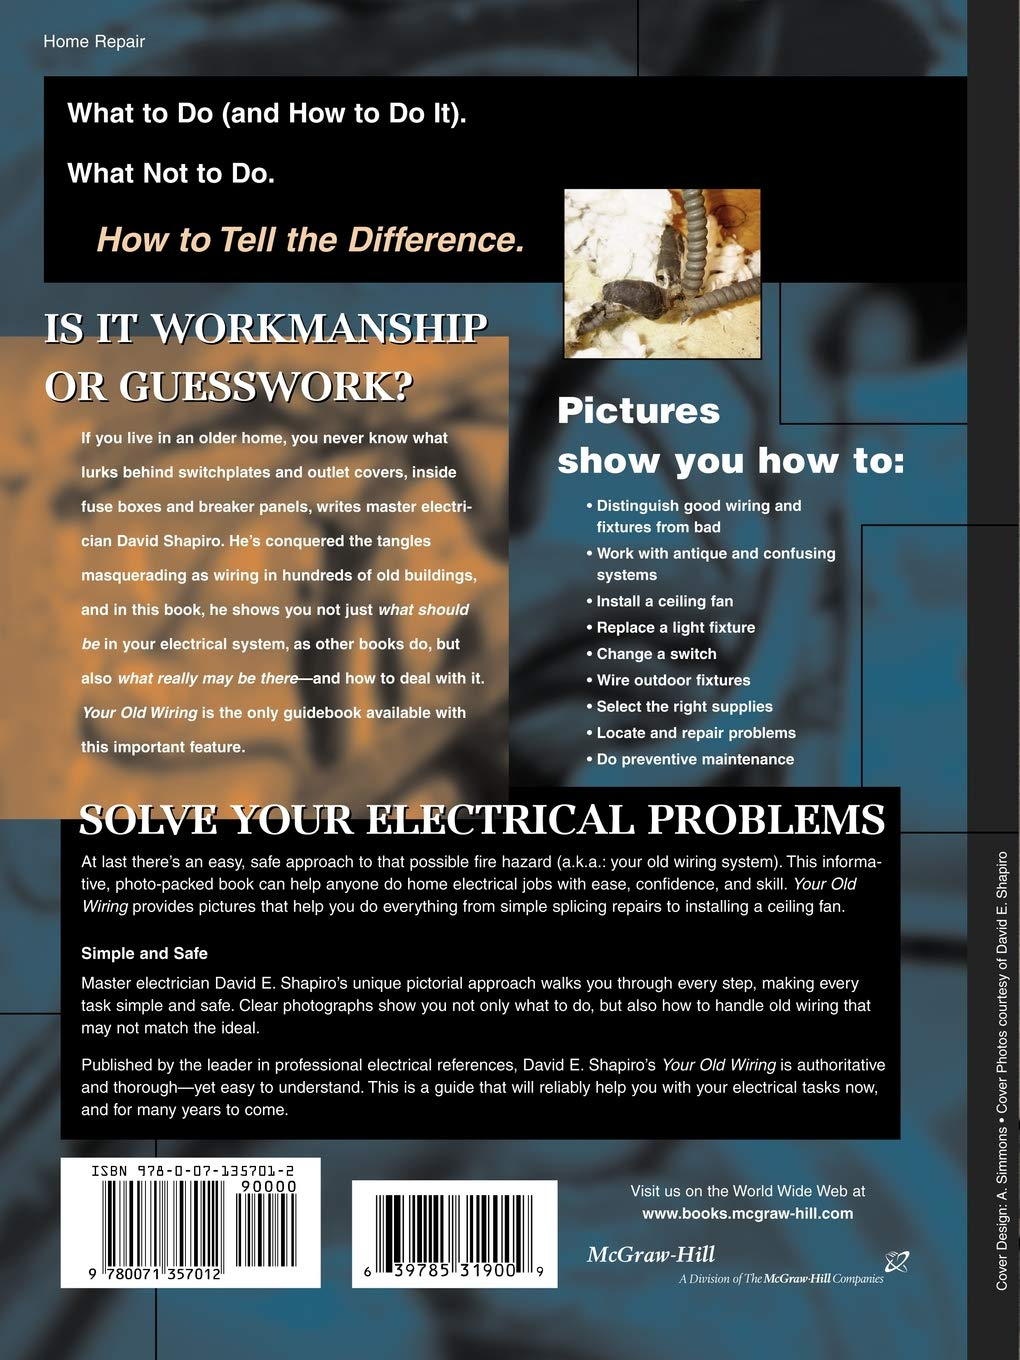 Your Old Wiring: David E. Shapiro: 0639785319009: Amazon.com ... How Long Will Wiring Last on